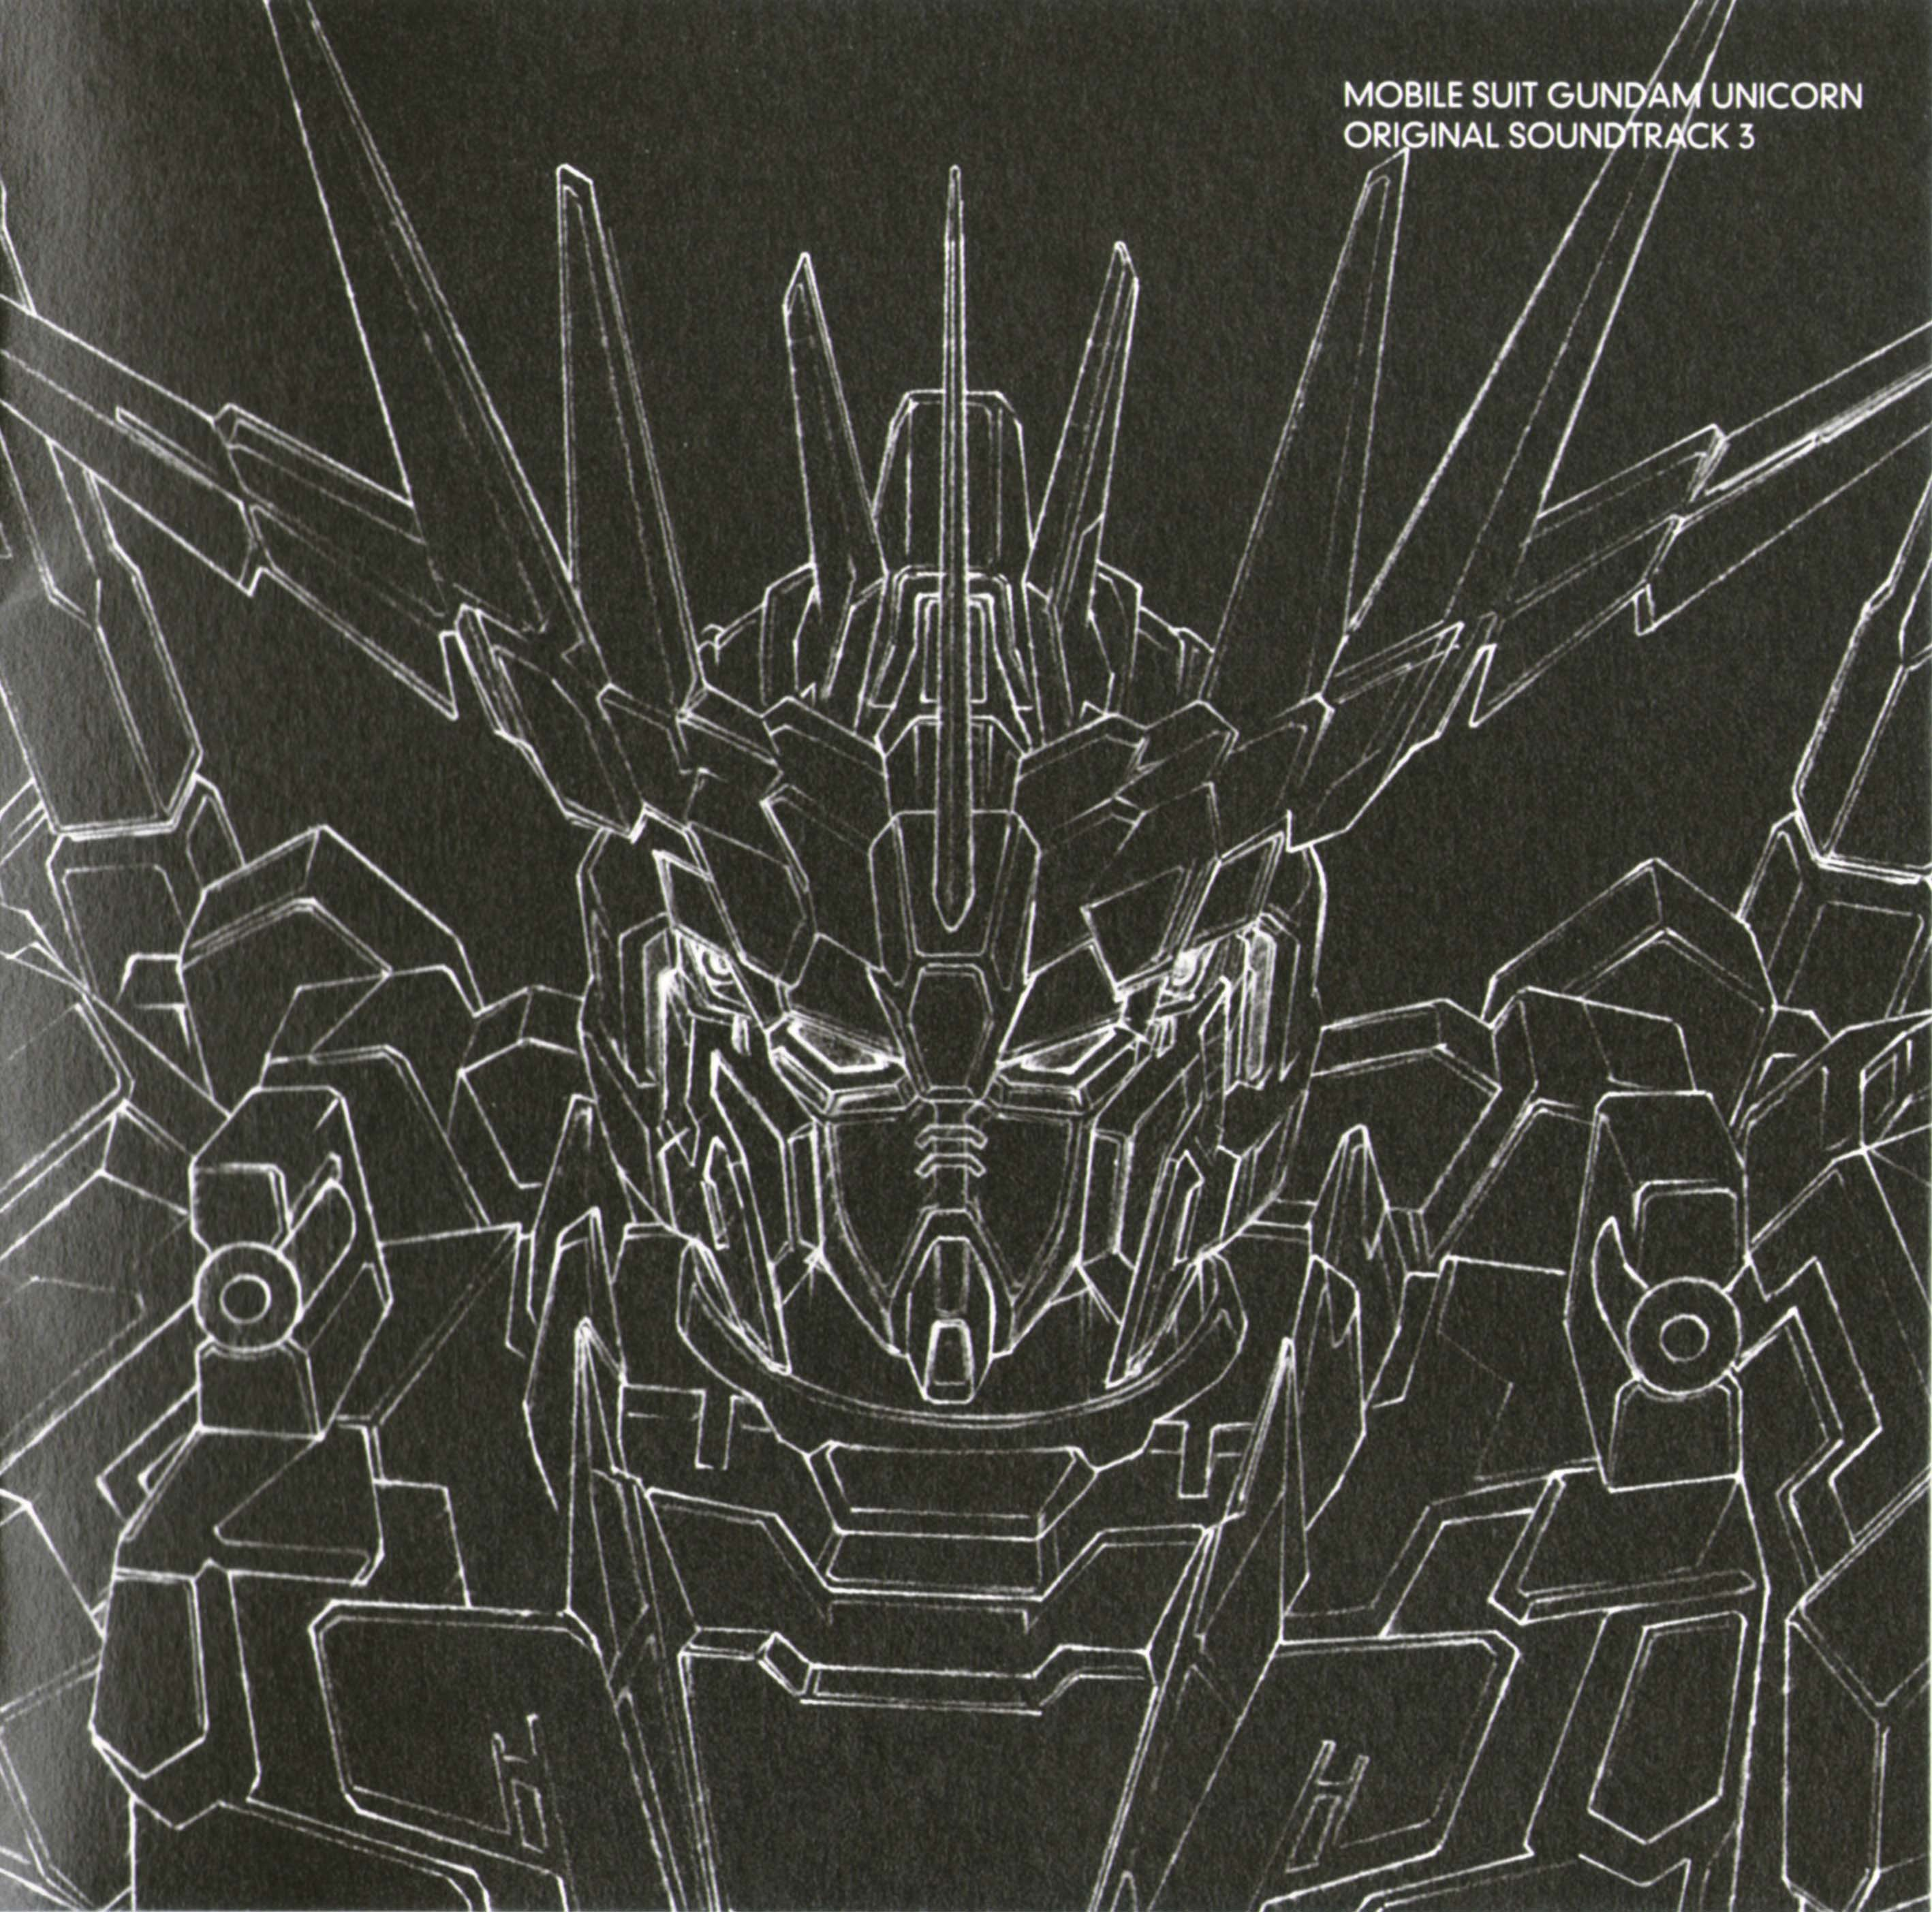 Mobile Suit Gundam Unicorn Original Soundt..